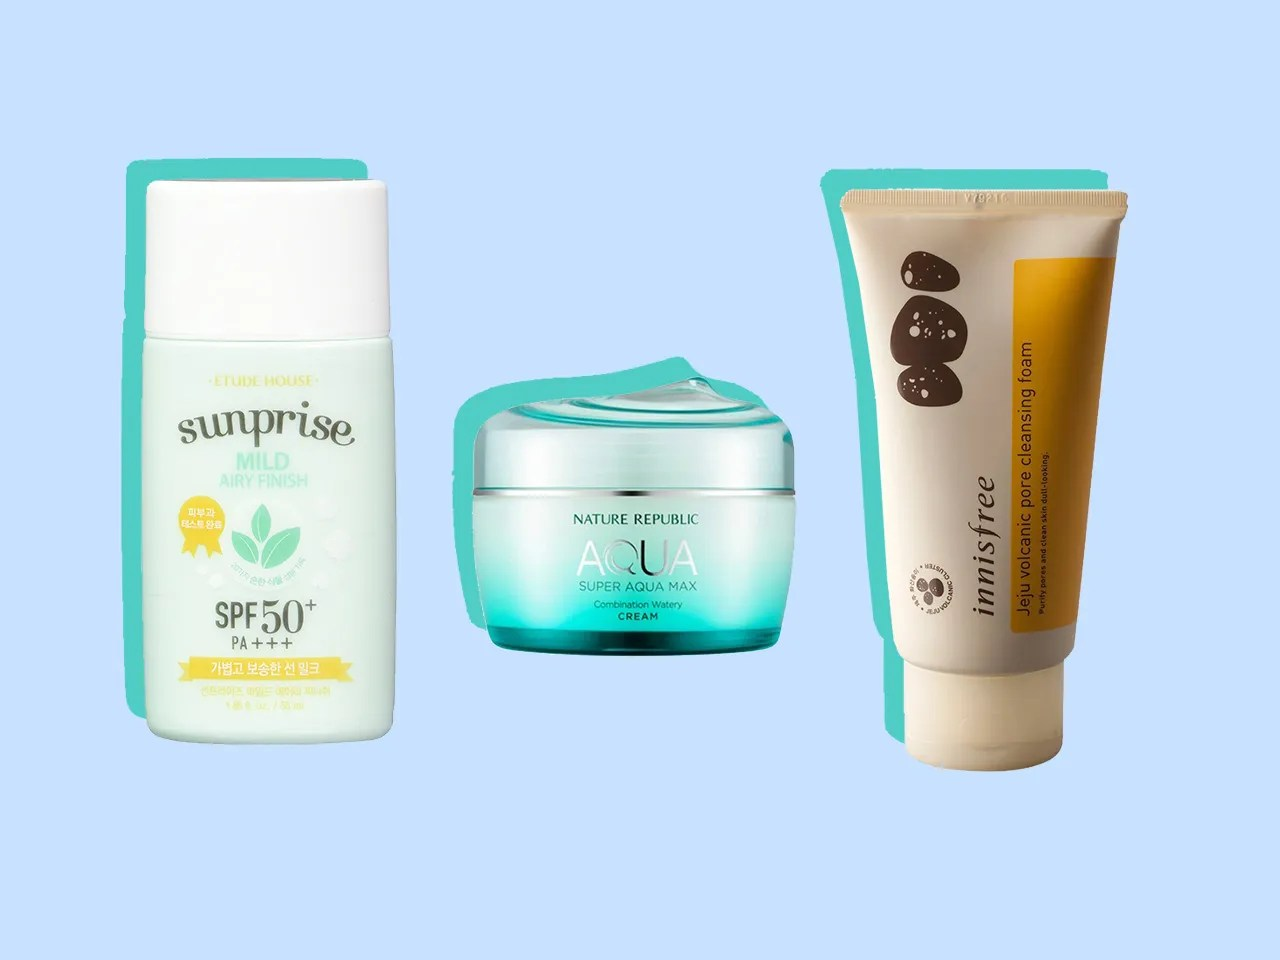 Best Skin Care Cream The 7 Best Korean Skin Care Products On Amazon According To